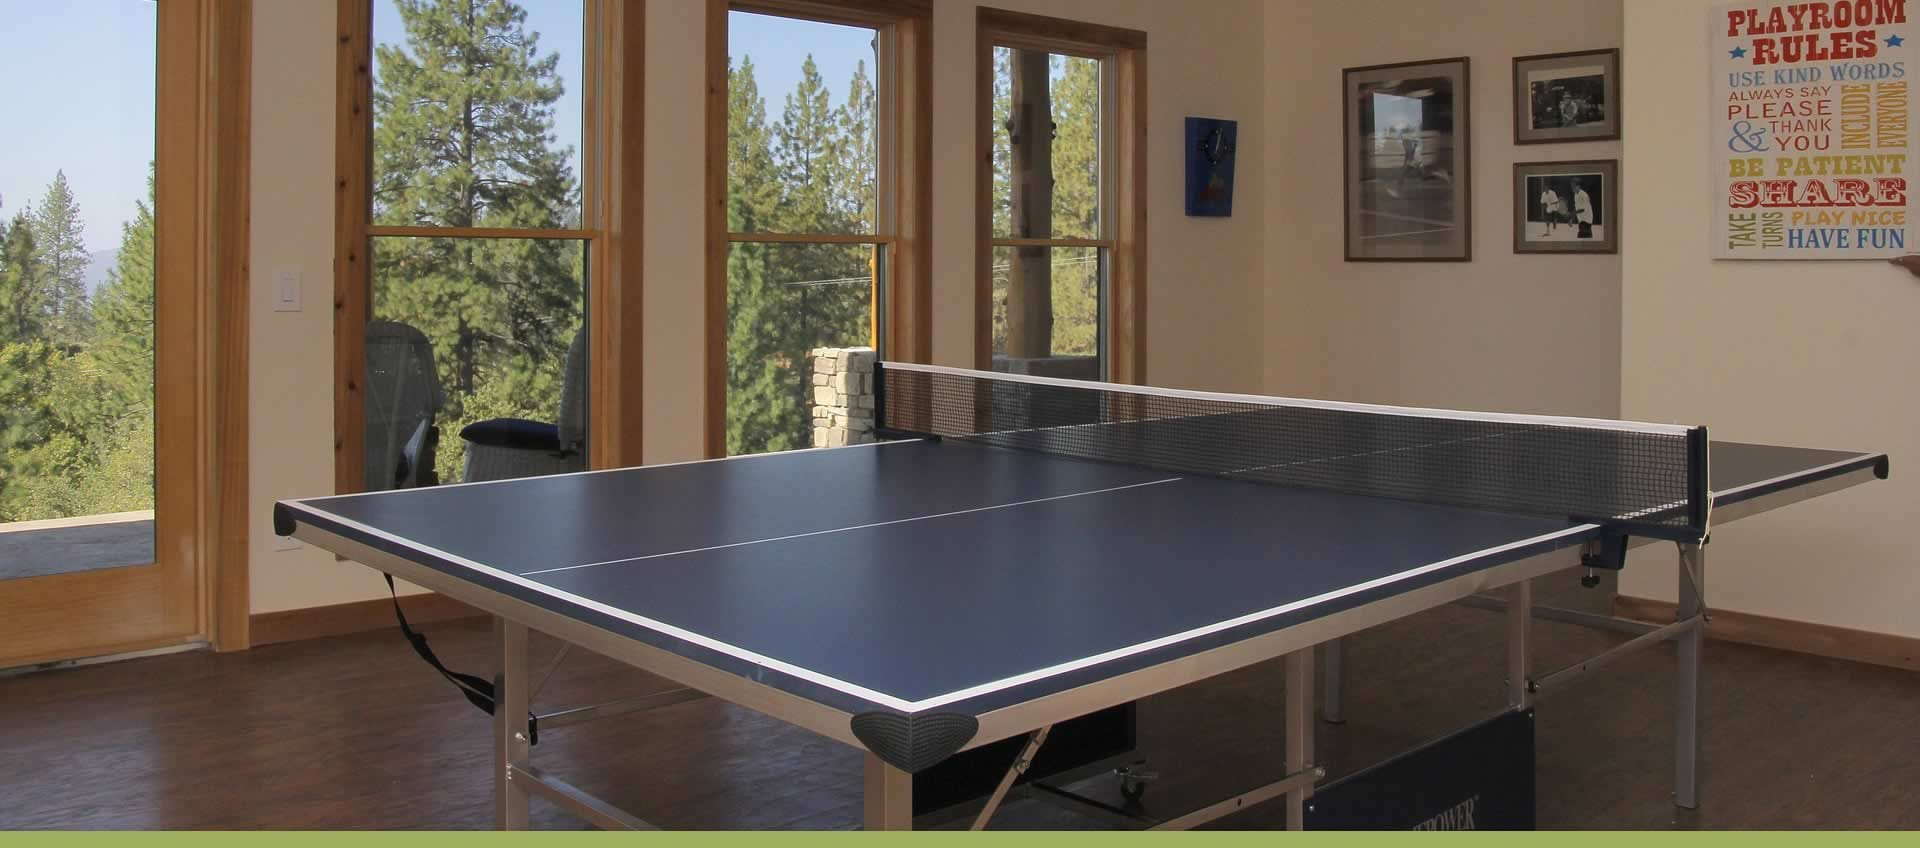 courtwood-table-tennis4